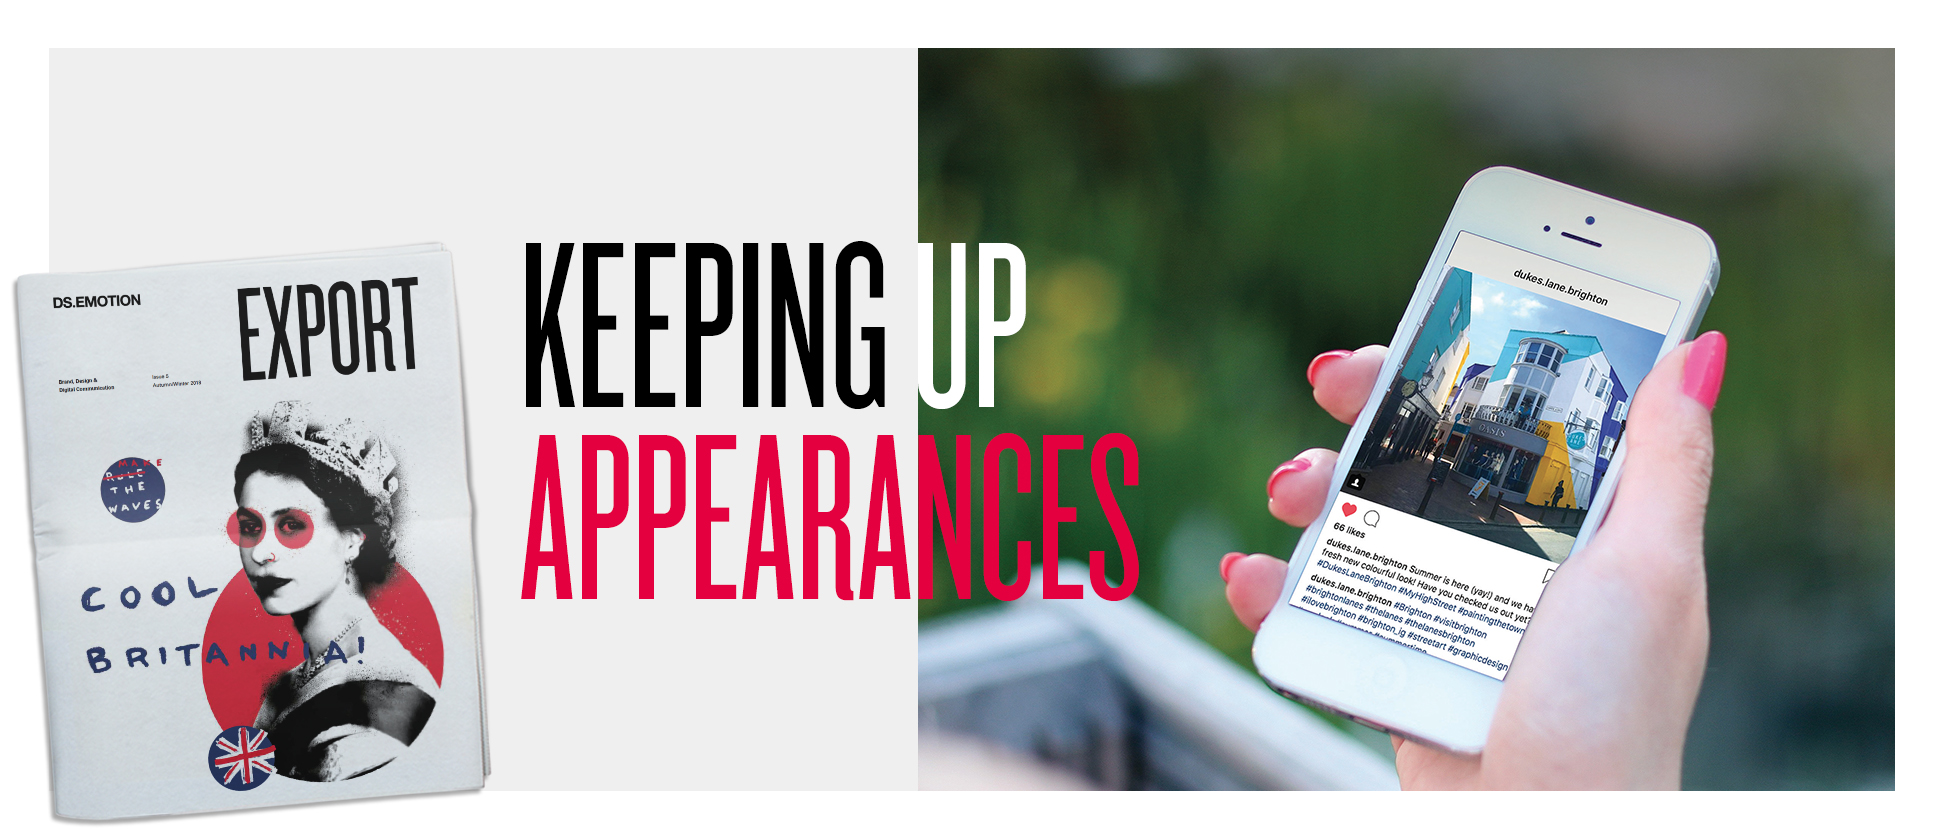 Keeping up appearances – the importance of social media